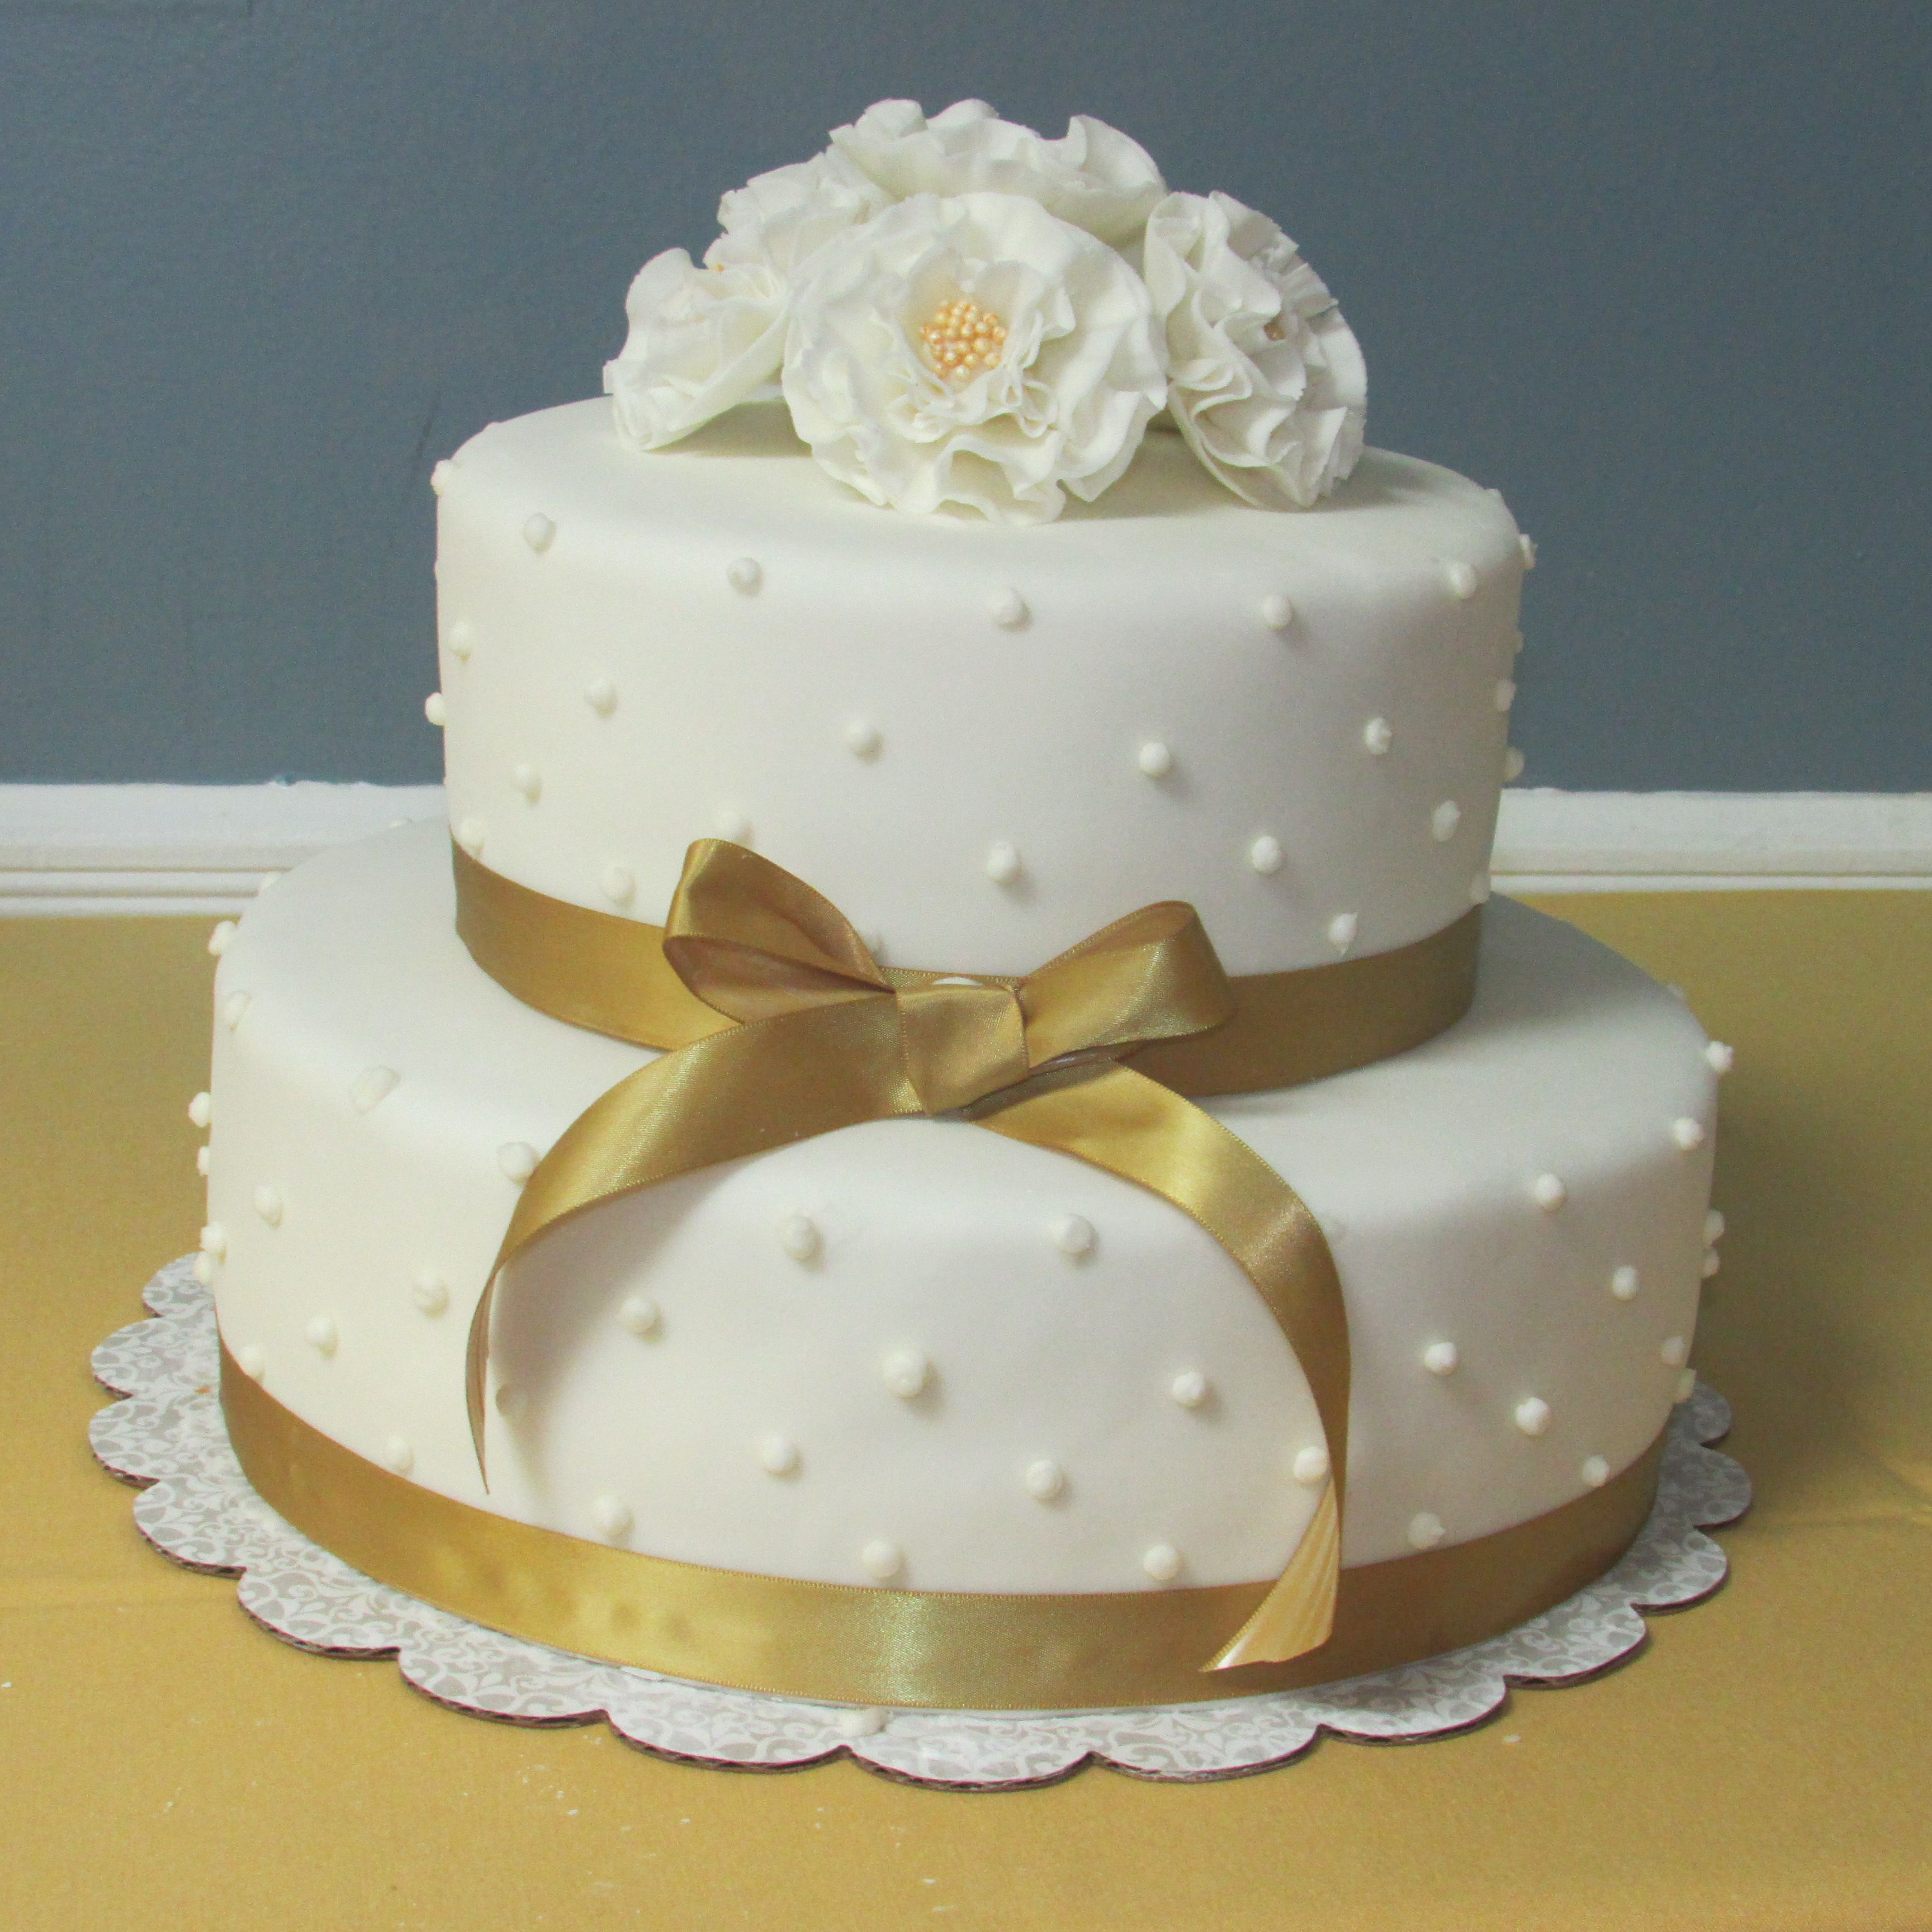 Cake Ideas For Wedding Anniversary: 50th Anniversary Cake By Nancy Cakes